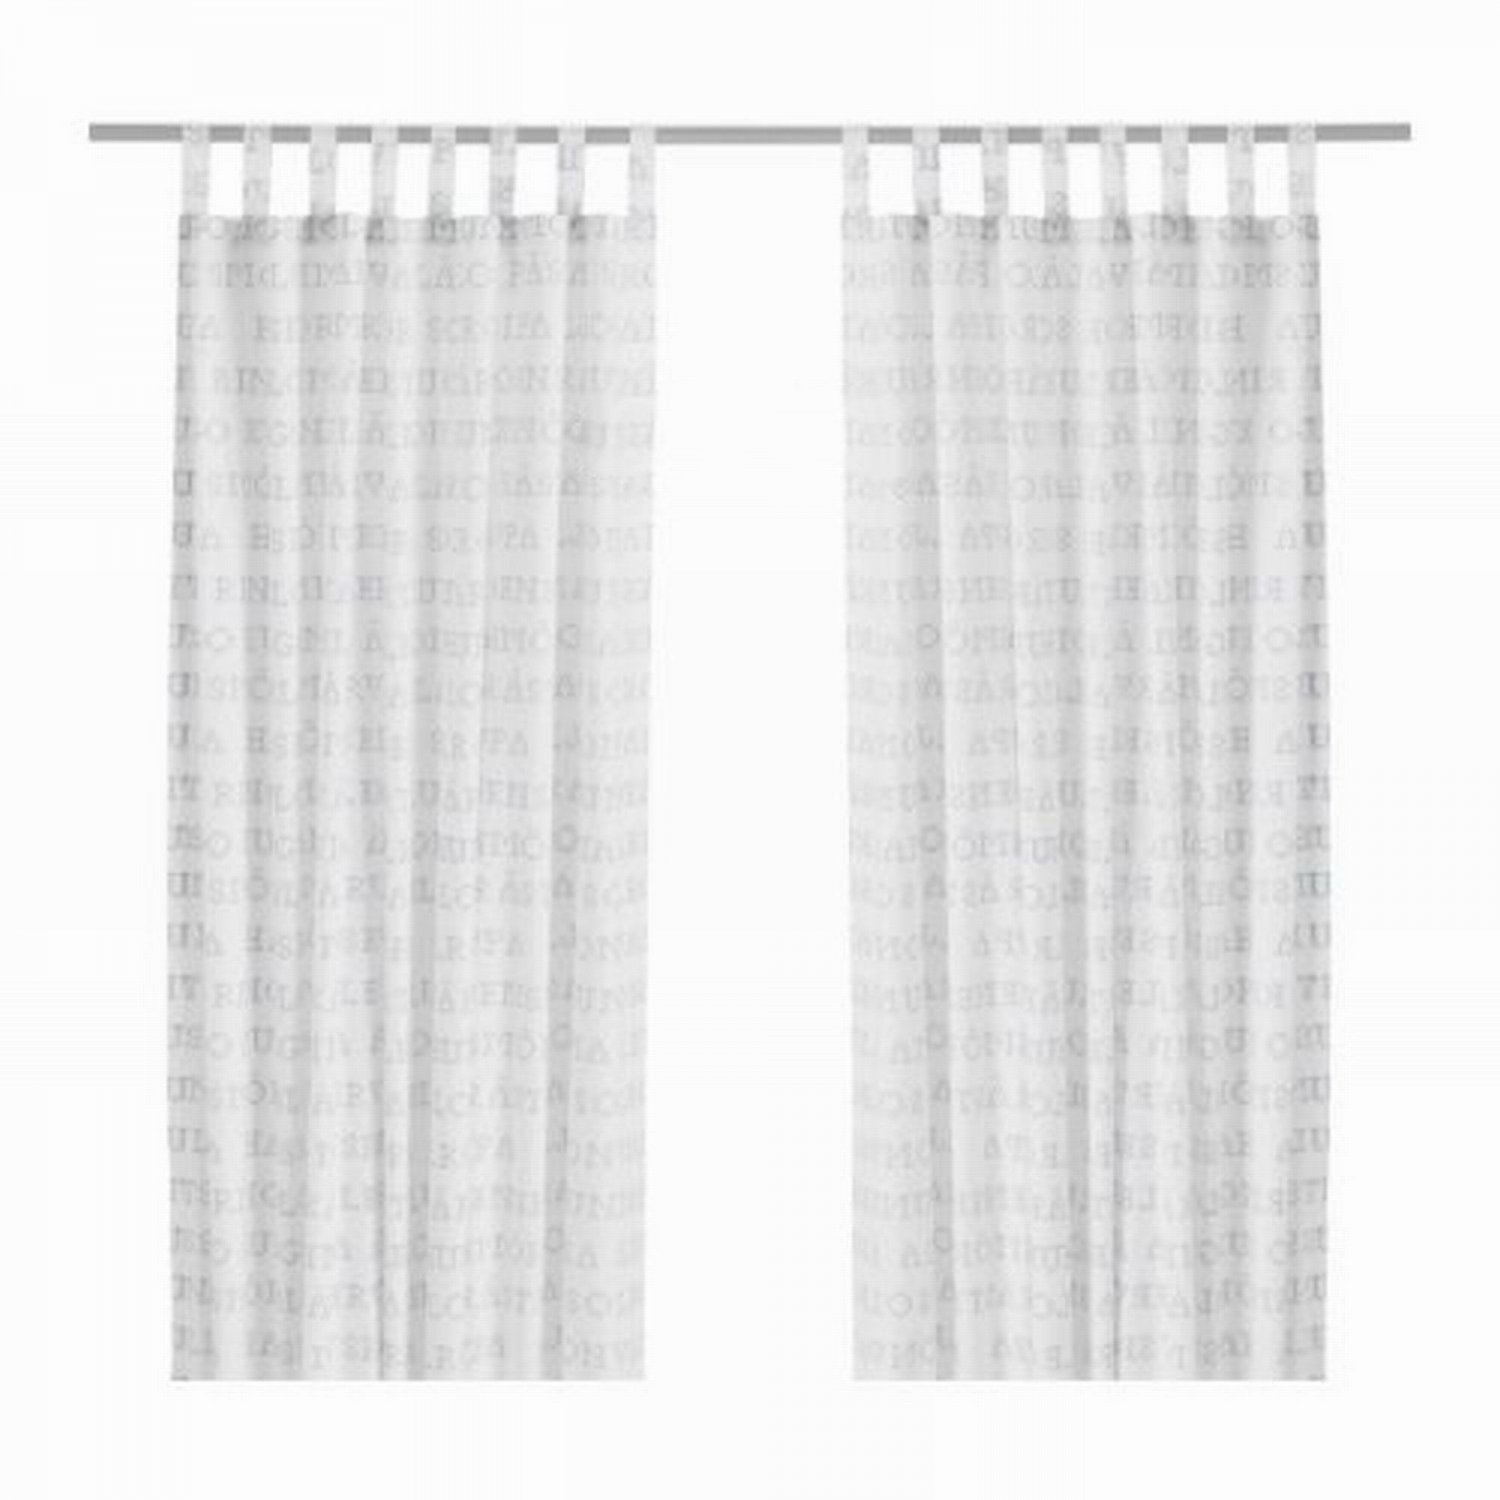 Ikea unni ord alphabet curtains drapes white blue swedish for White curtains ikea